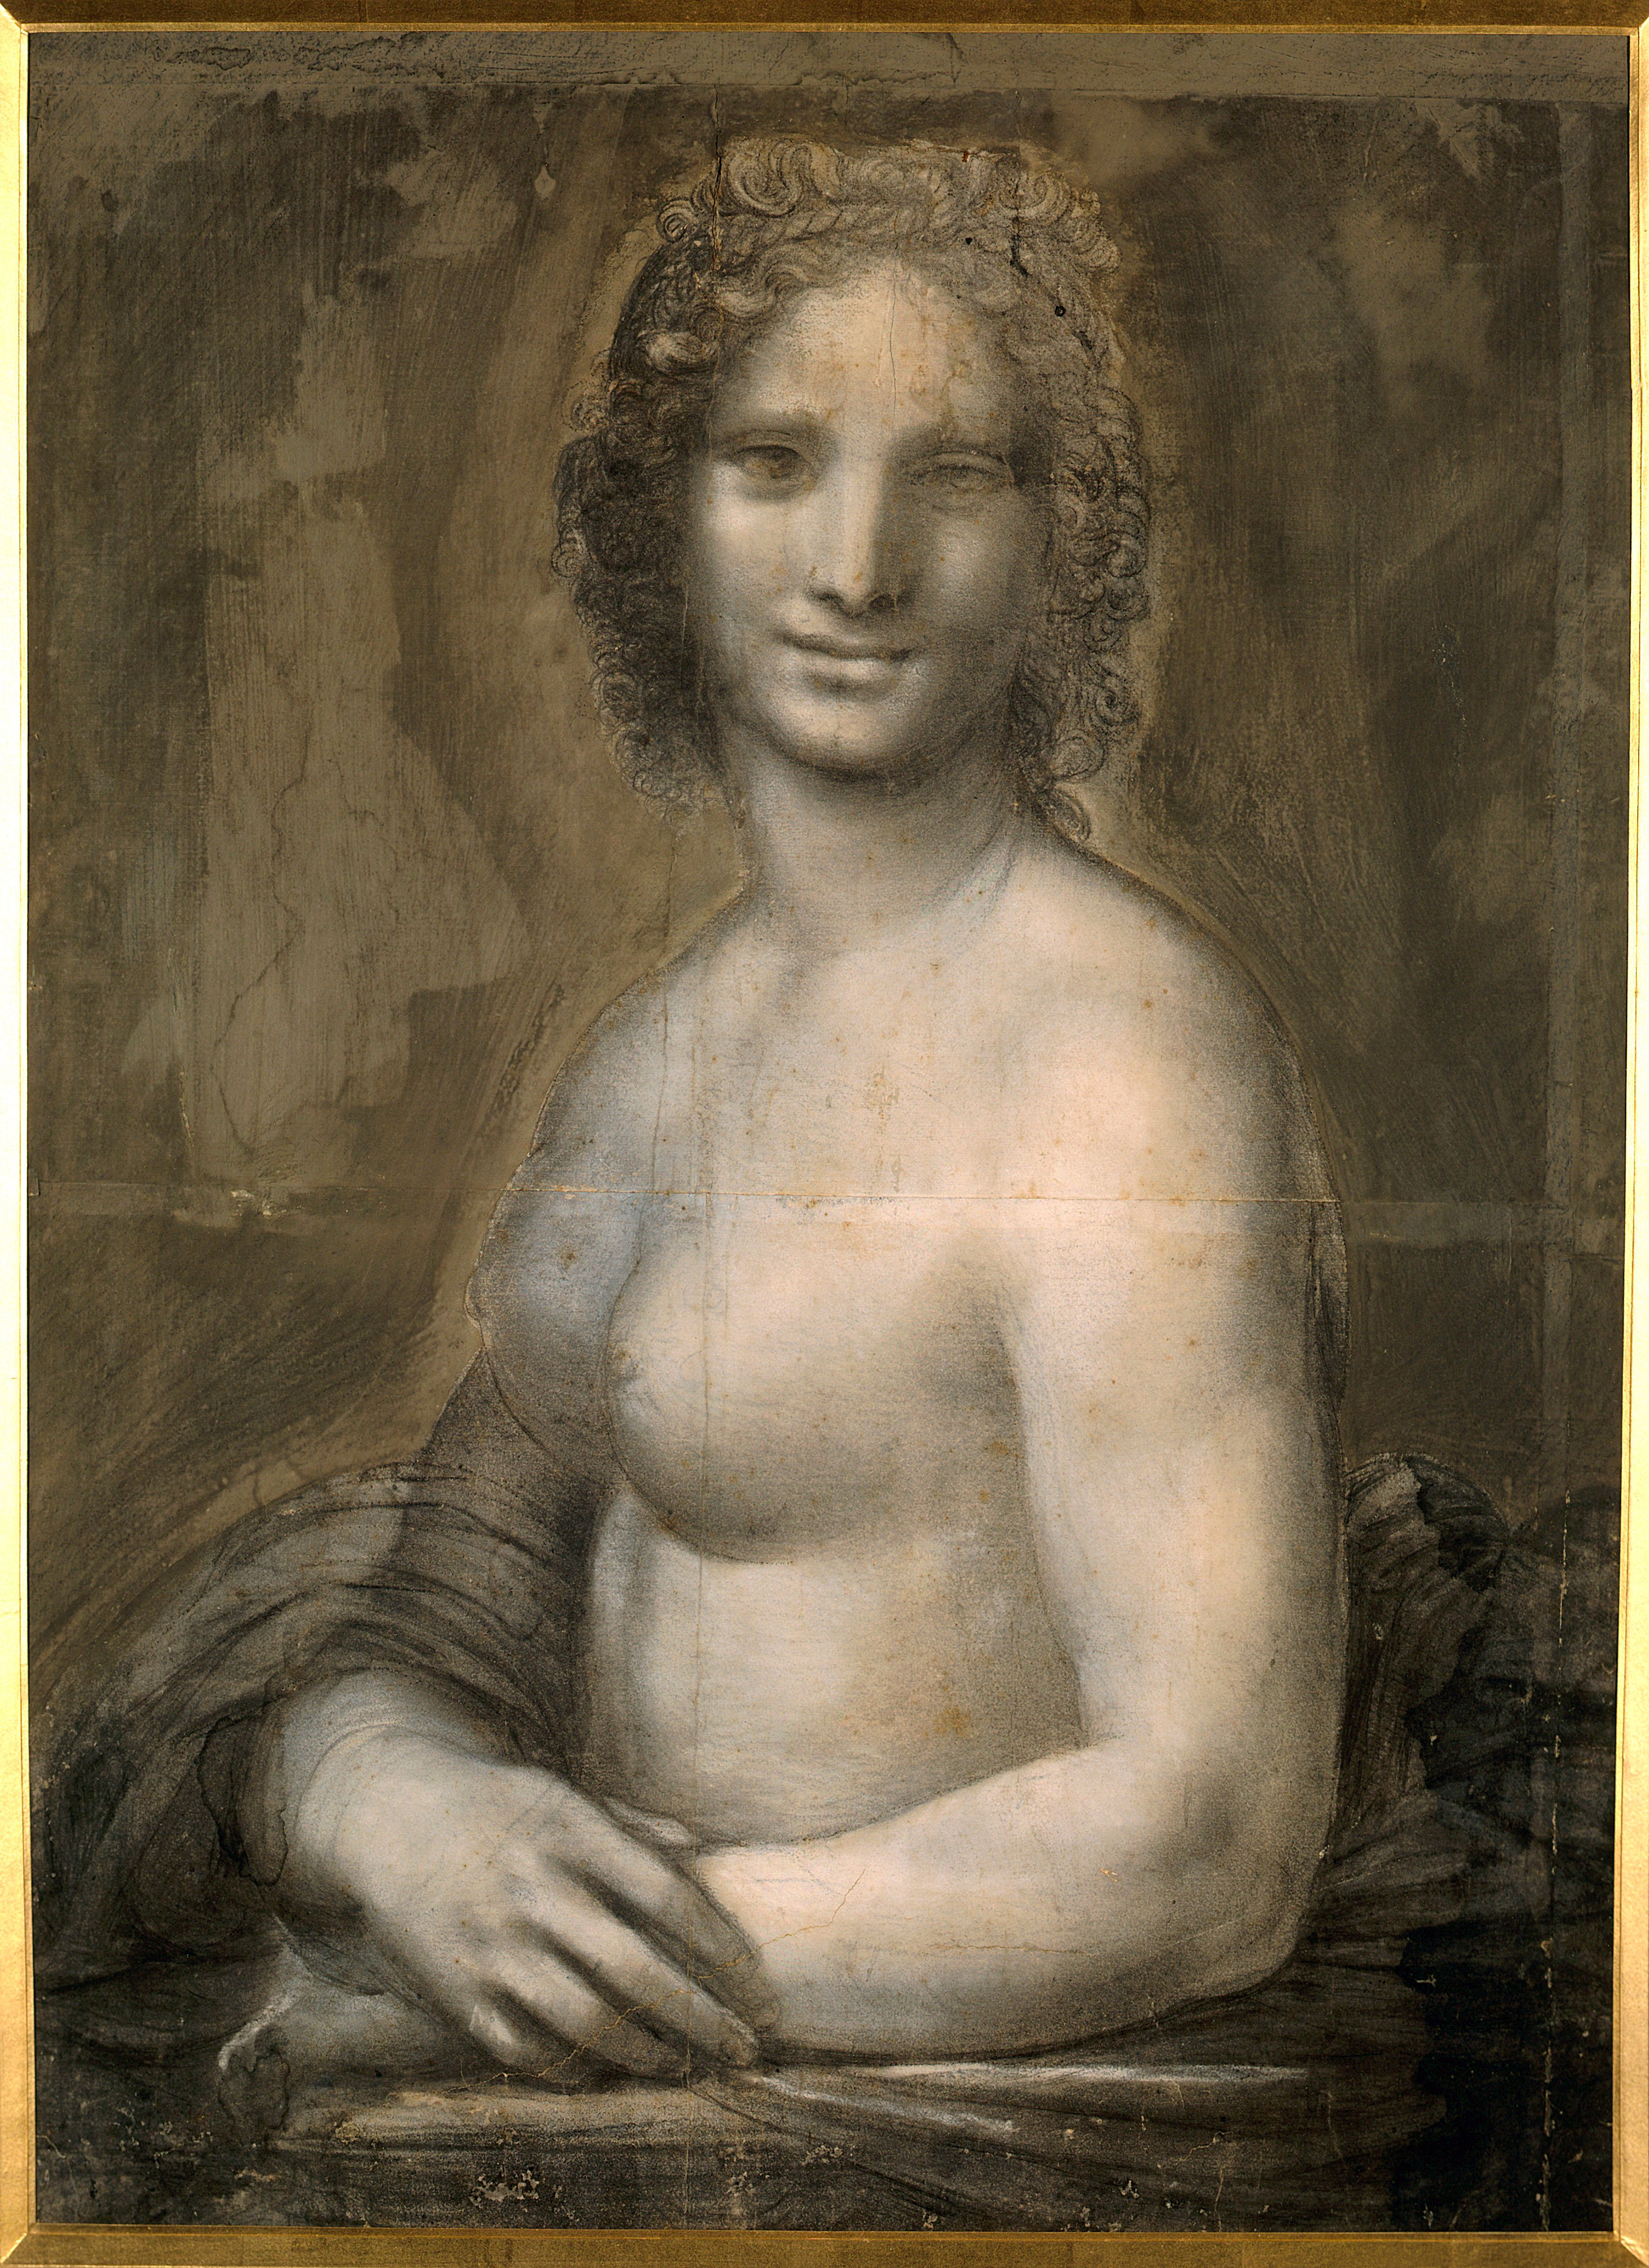 Experts Believe Leonardo Da Vinci Traced The 'Mona Lisa' From This Nude